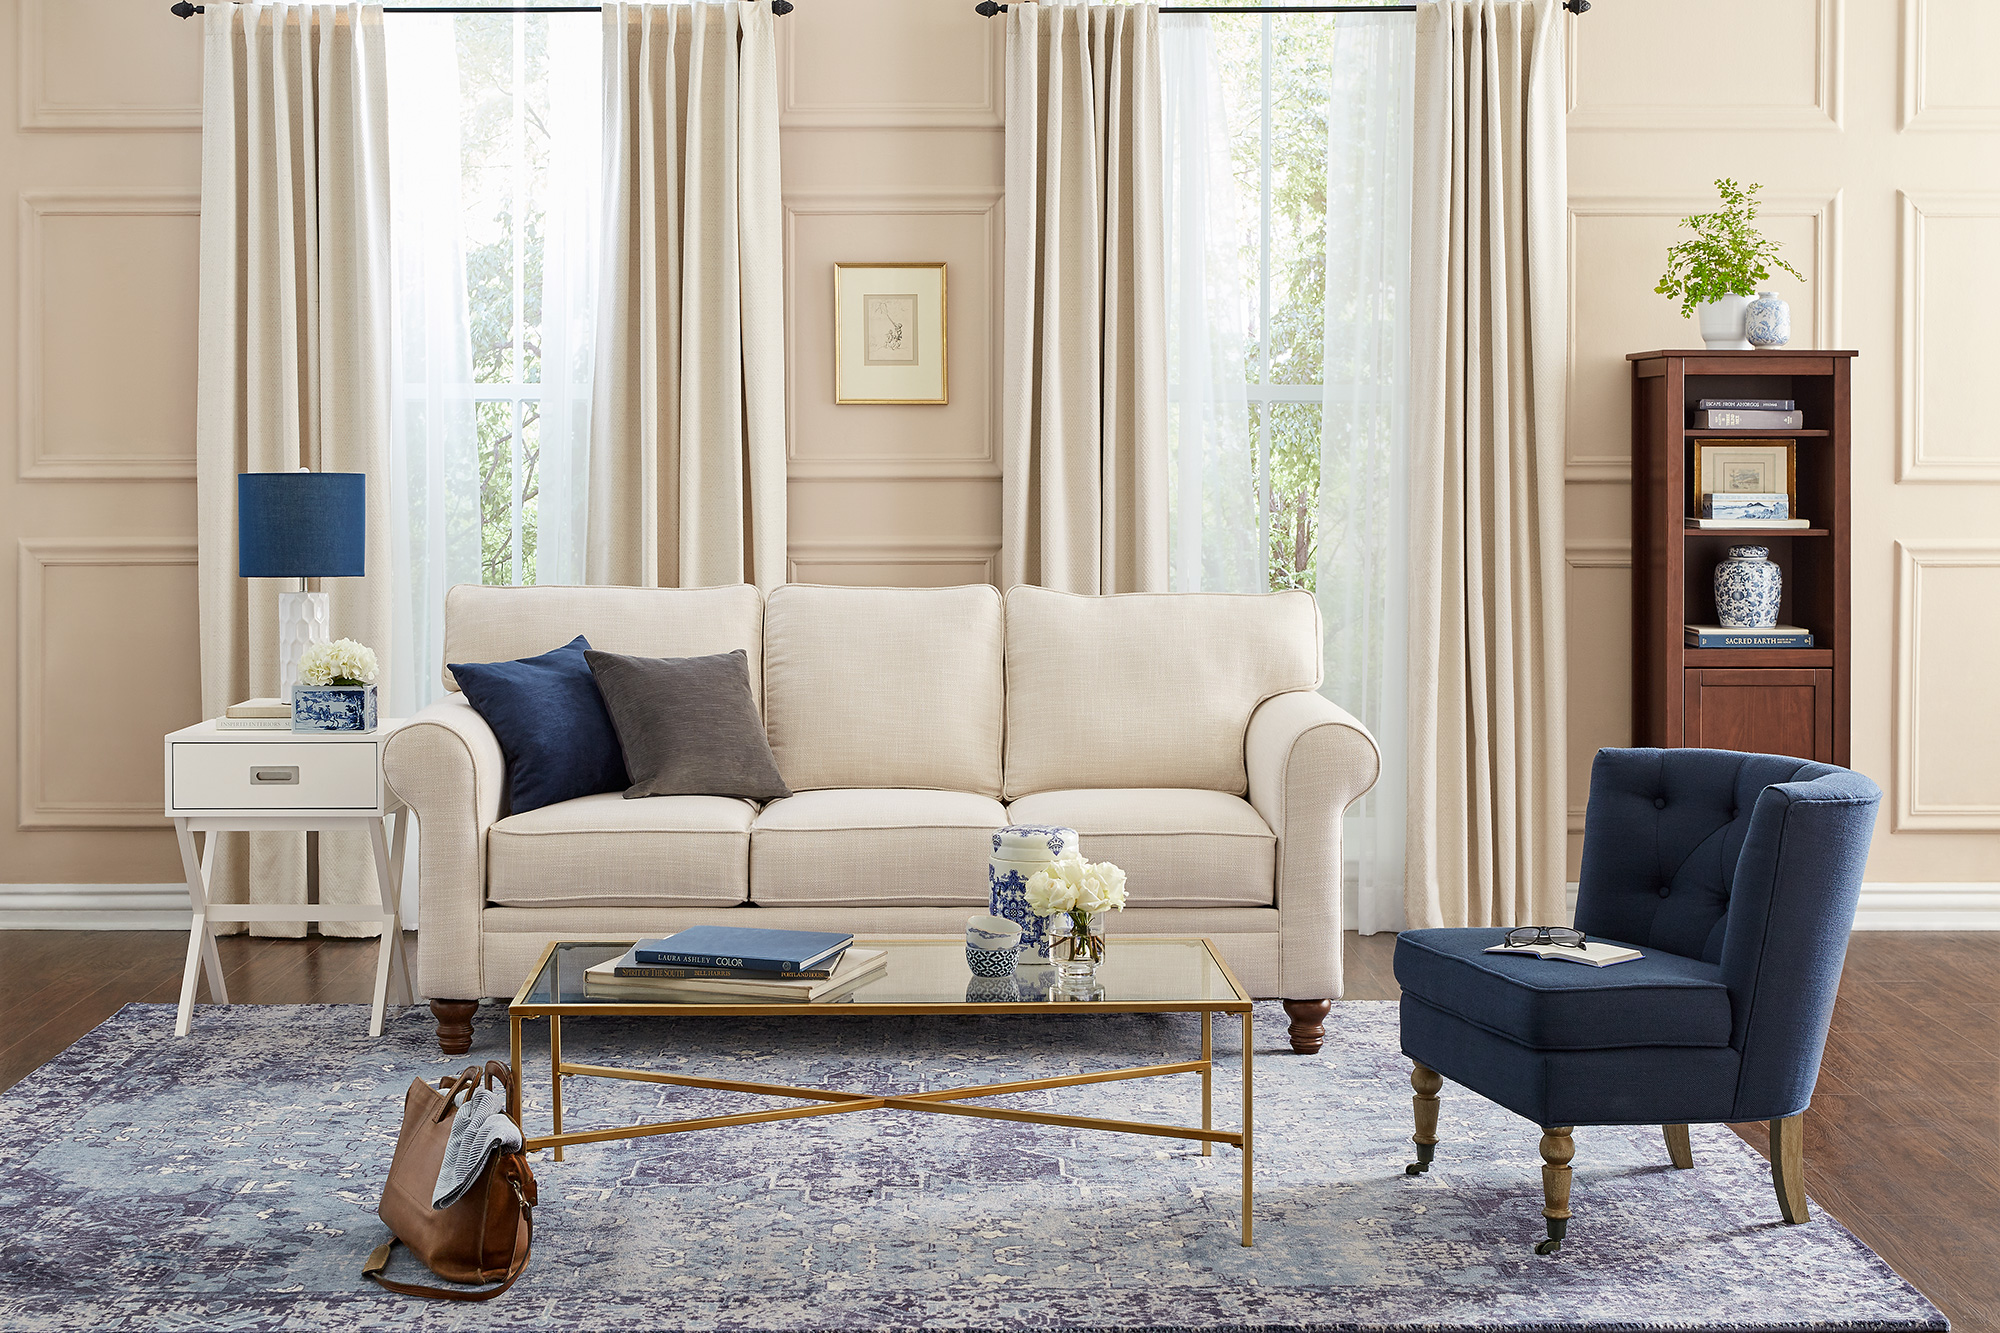 new bargains darby home darley end table ravenna living accent target launches its own furnishings collection take peek the affordable items temple jar lamps blue and white ginger